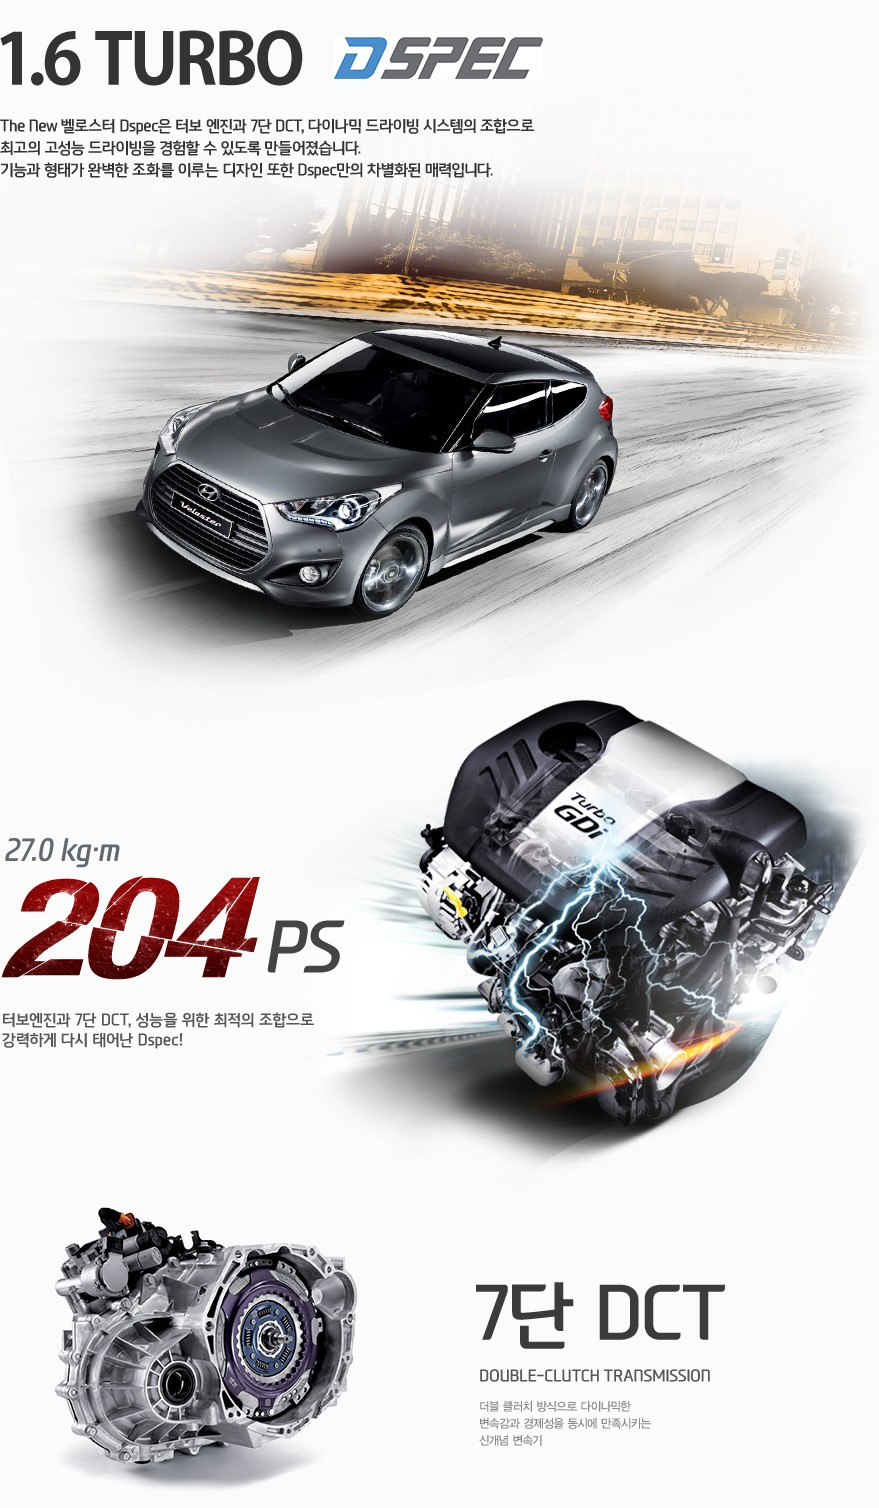 Where Is Hyundai Made >> 2015 Hyundai Veloster Turbo Unveiled with 204 HP and 7-Speed DCT - autoevolution